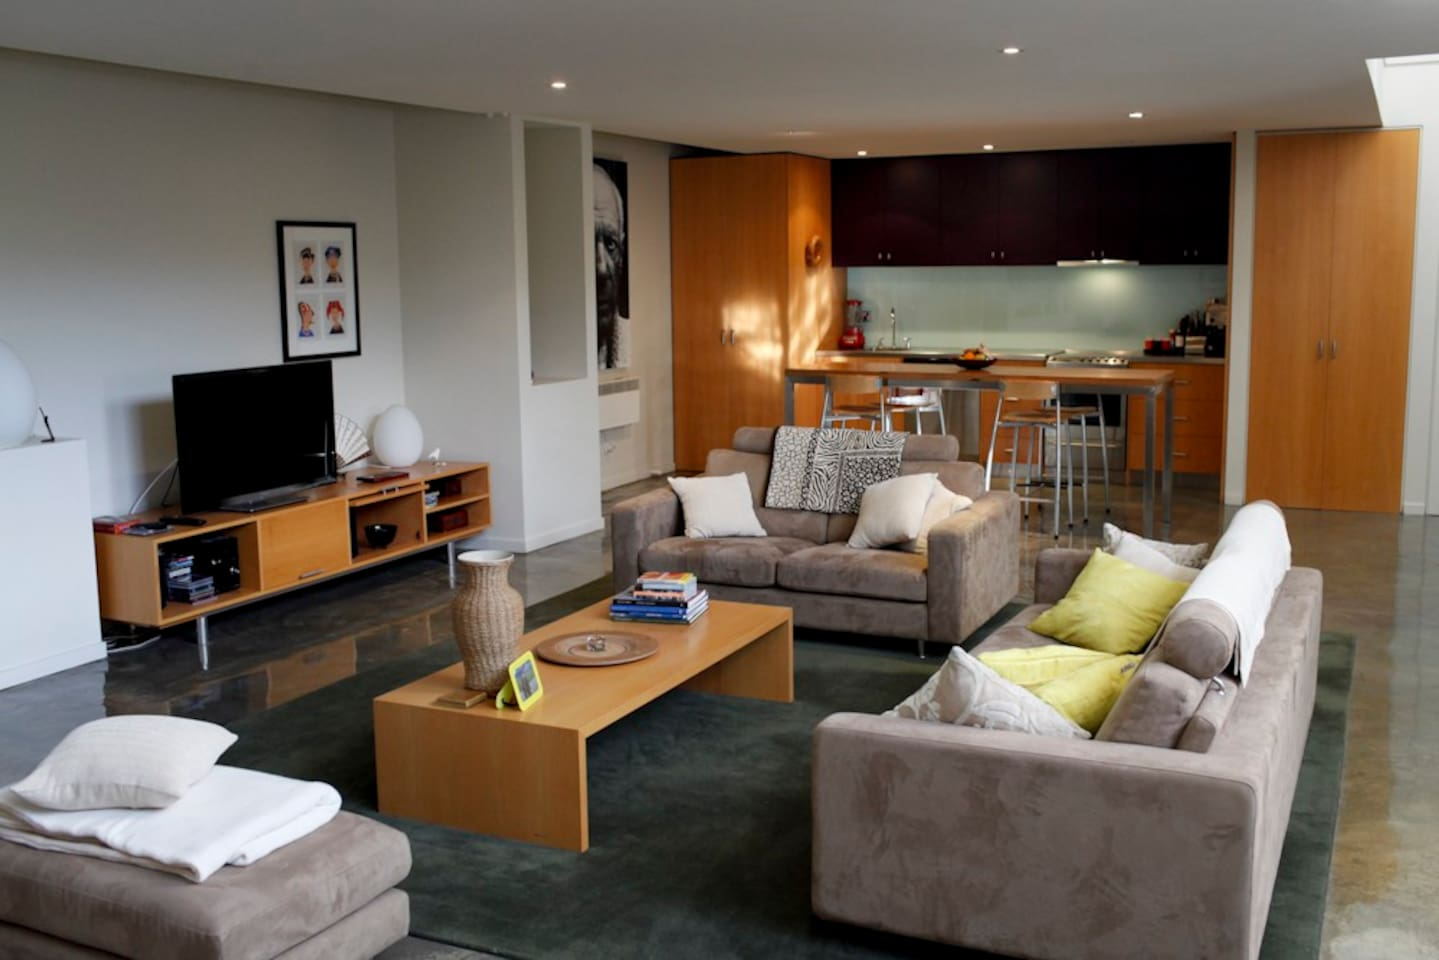 Lounge room TV and kitchen eating area